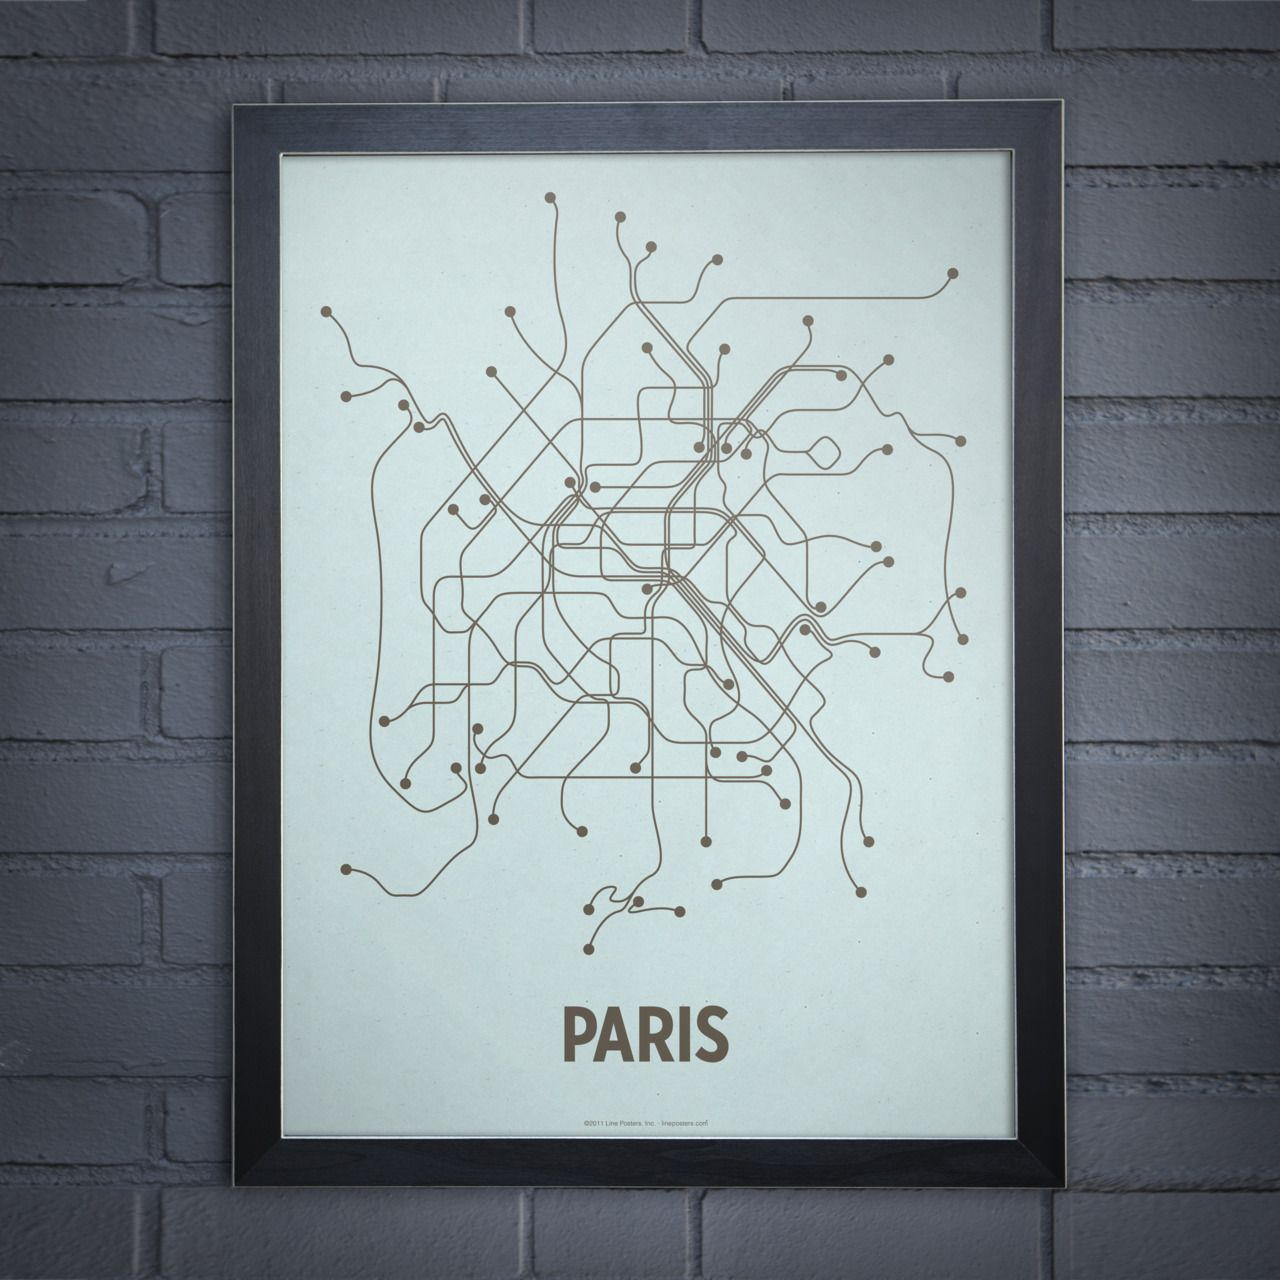 Lineposters. | Office Inspiration by Laura Allen | Pinterest ...